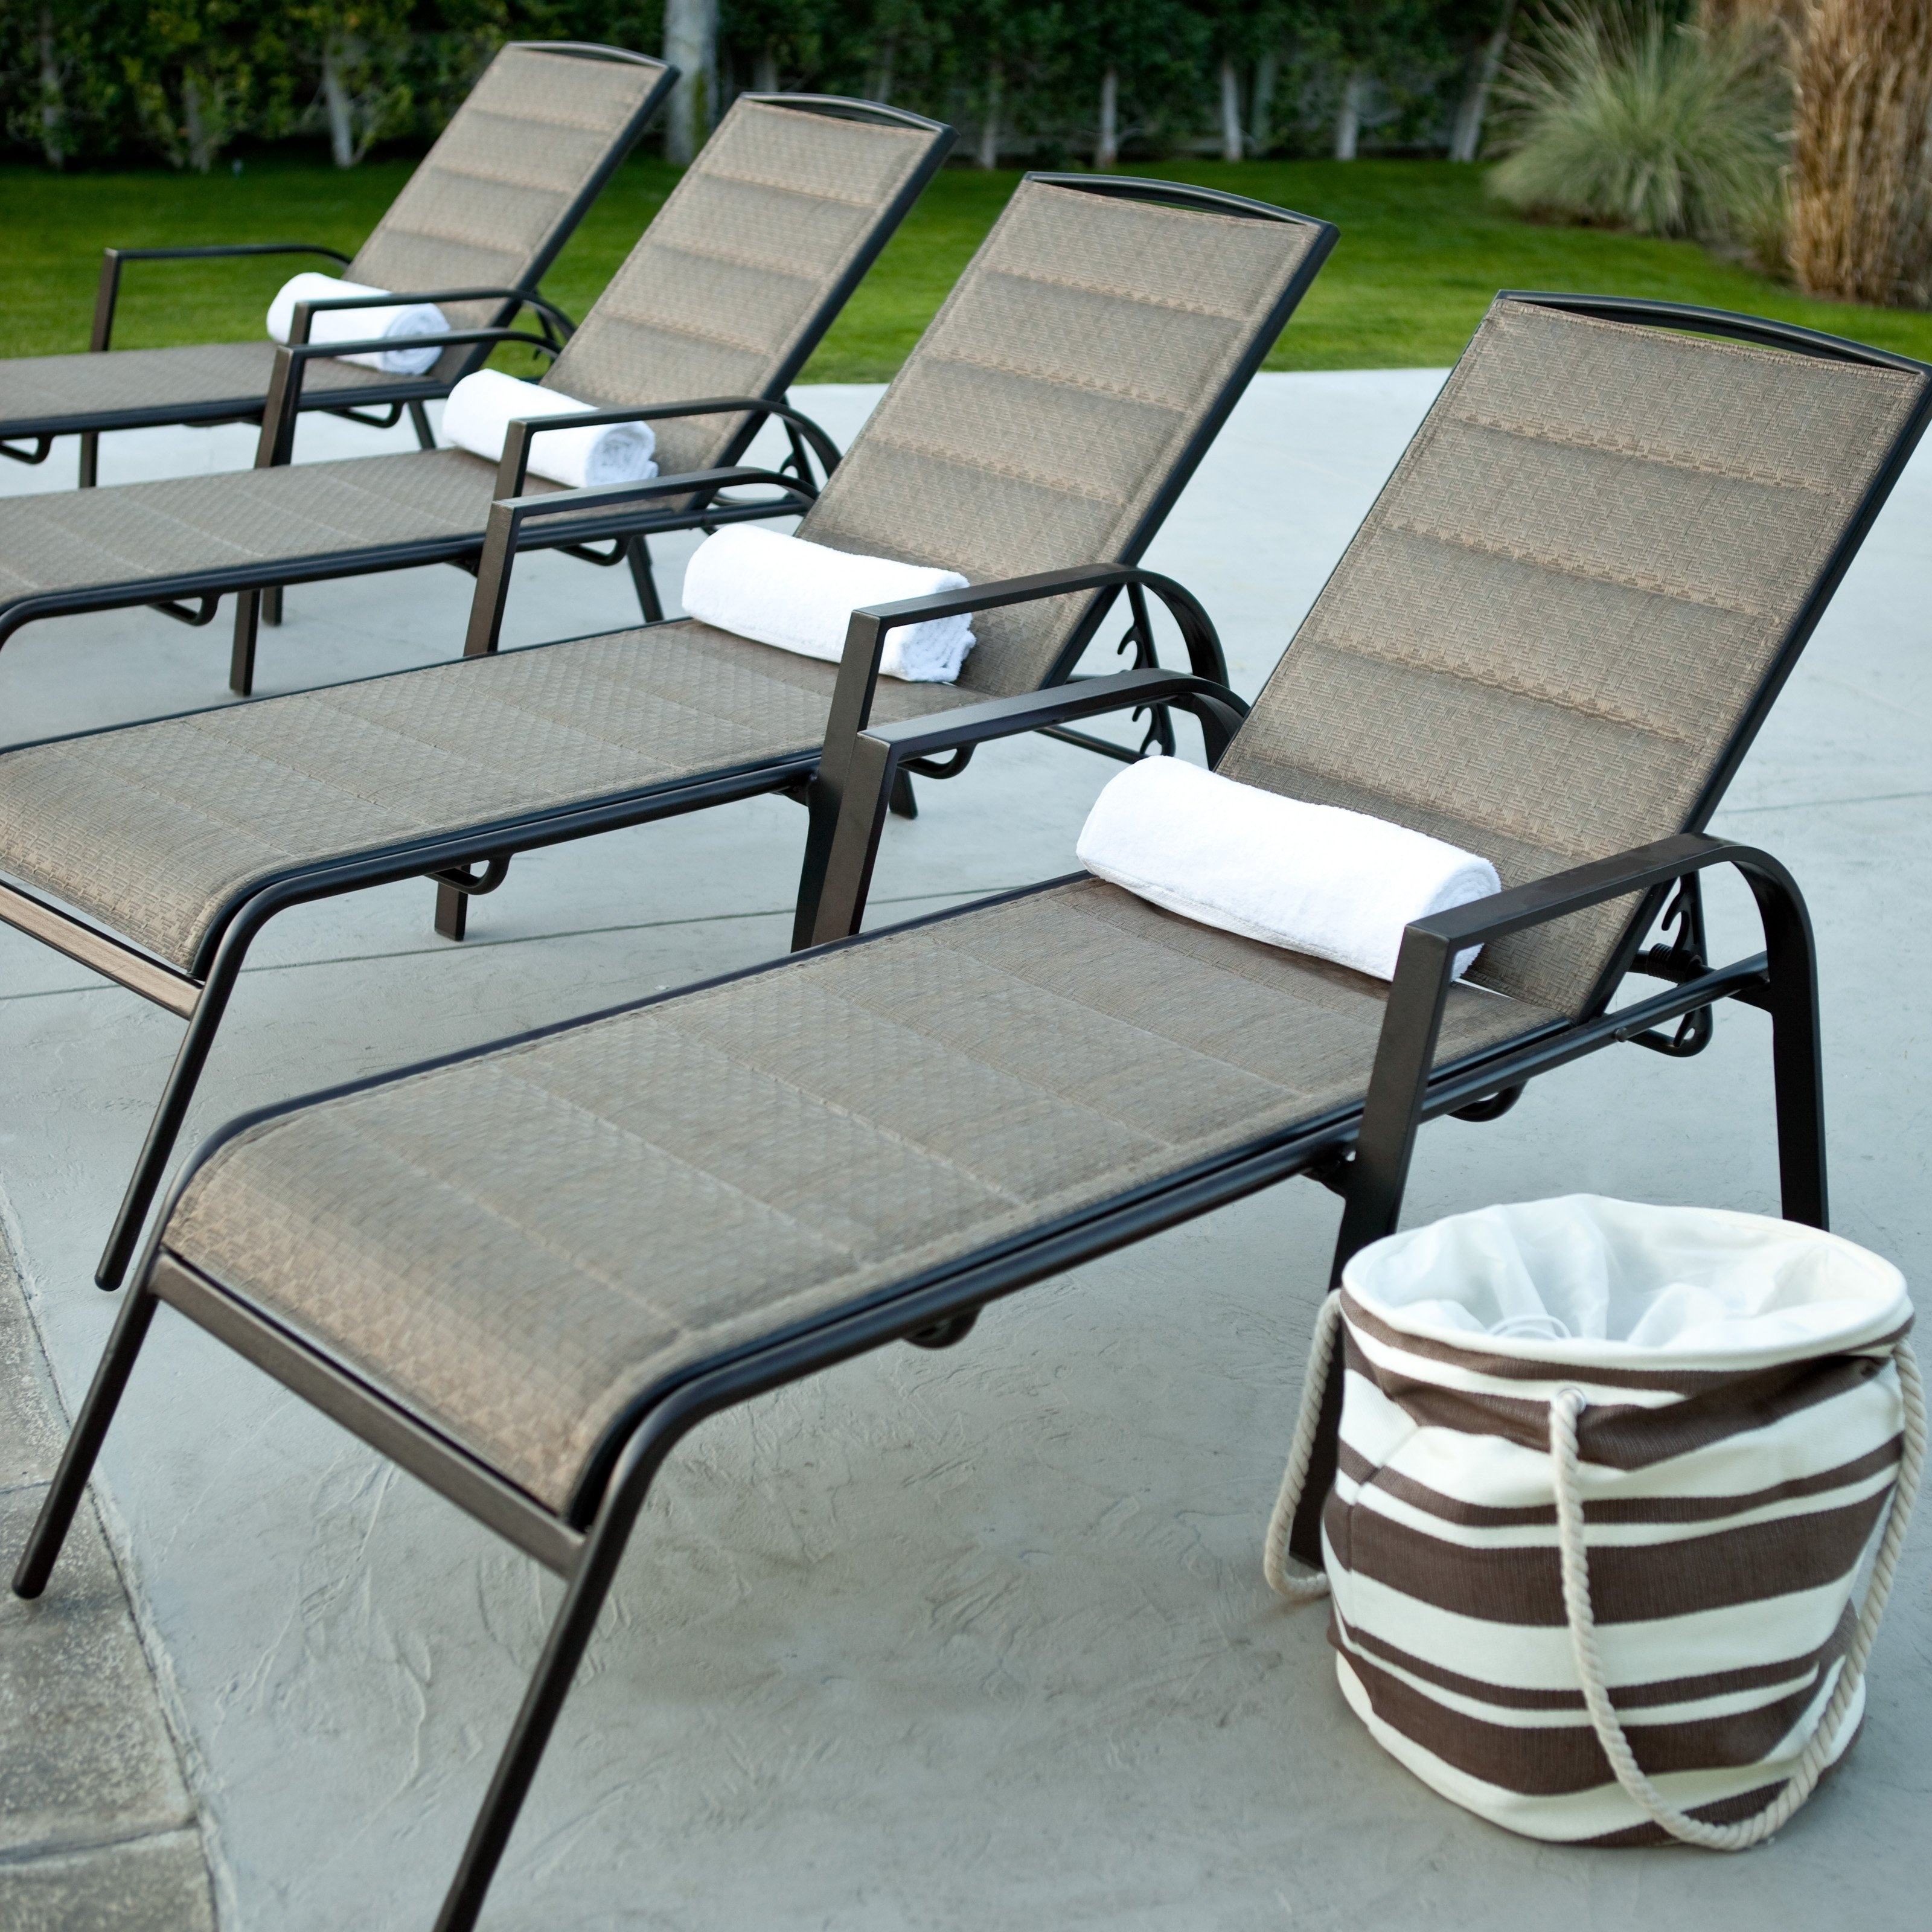 Most Recent Luxury Outdoor Chaise Lounge Chairs Regarding Luxury Outdoor Chaise Lounge Chairs • Lounge Chairs Ideas (View 8 of 15)